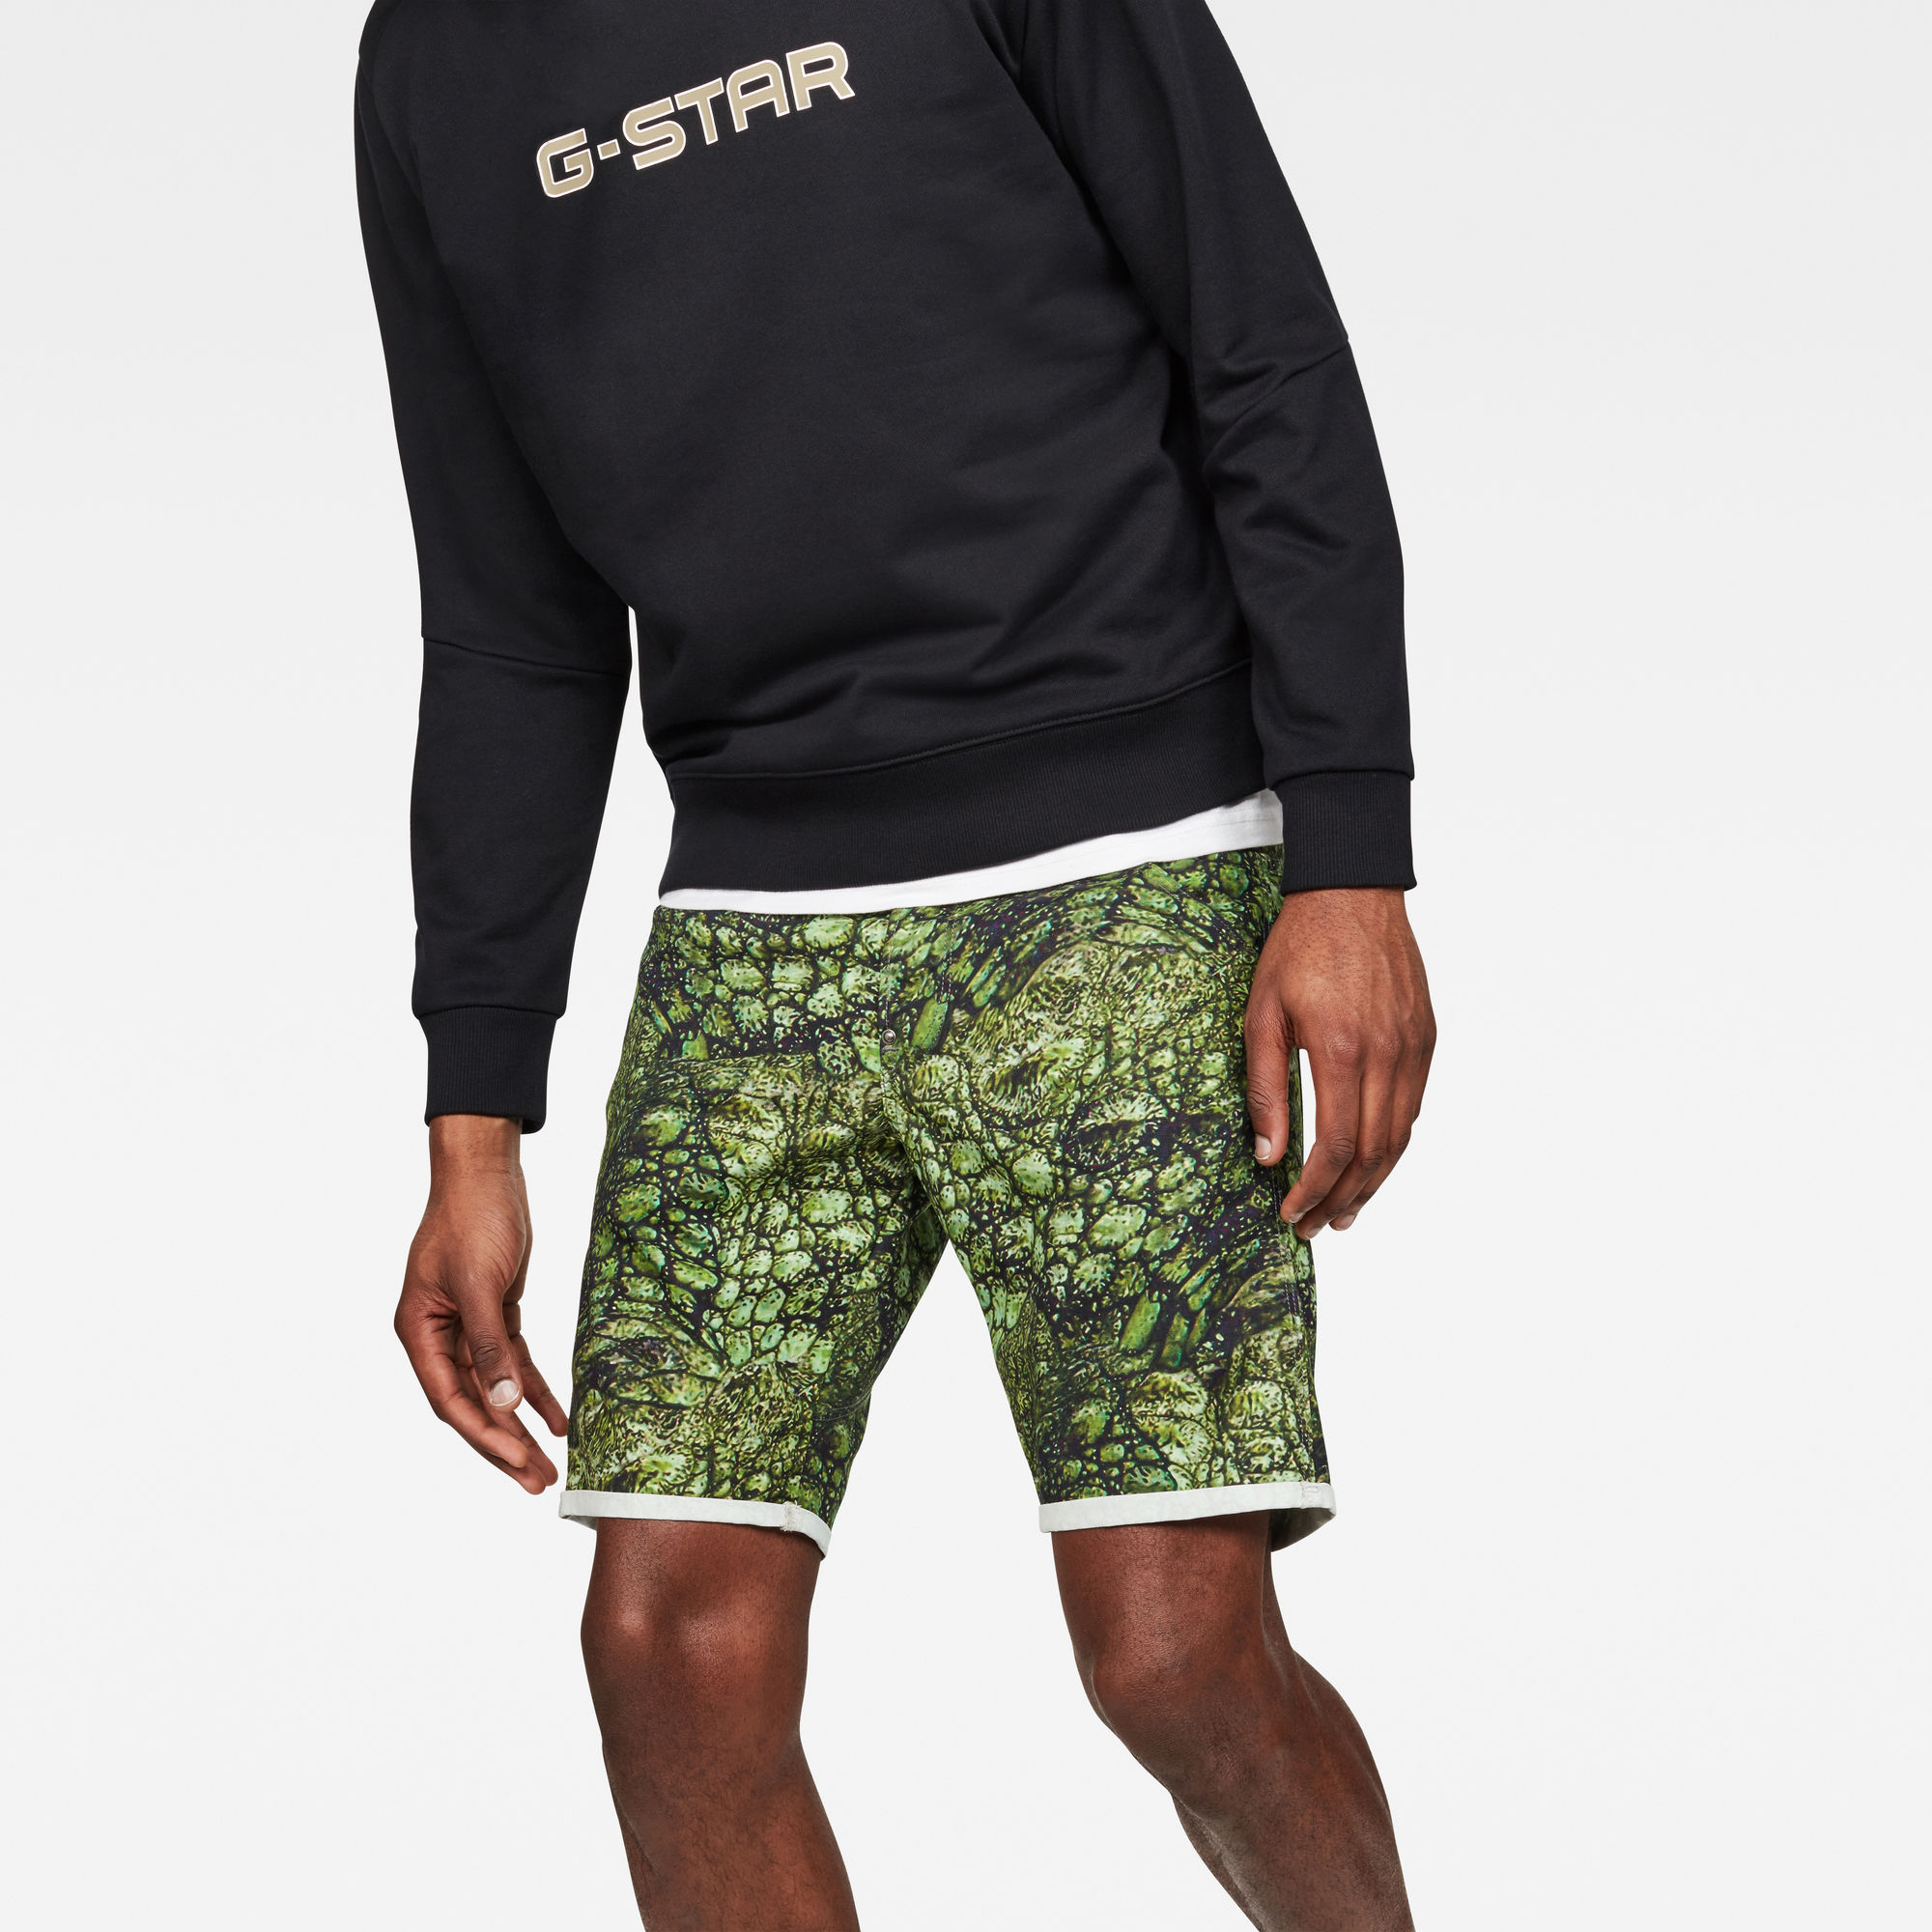 Image of G Star Raw 5621 Tapered Men's Shorts